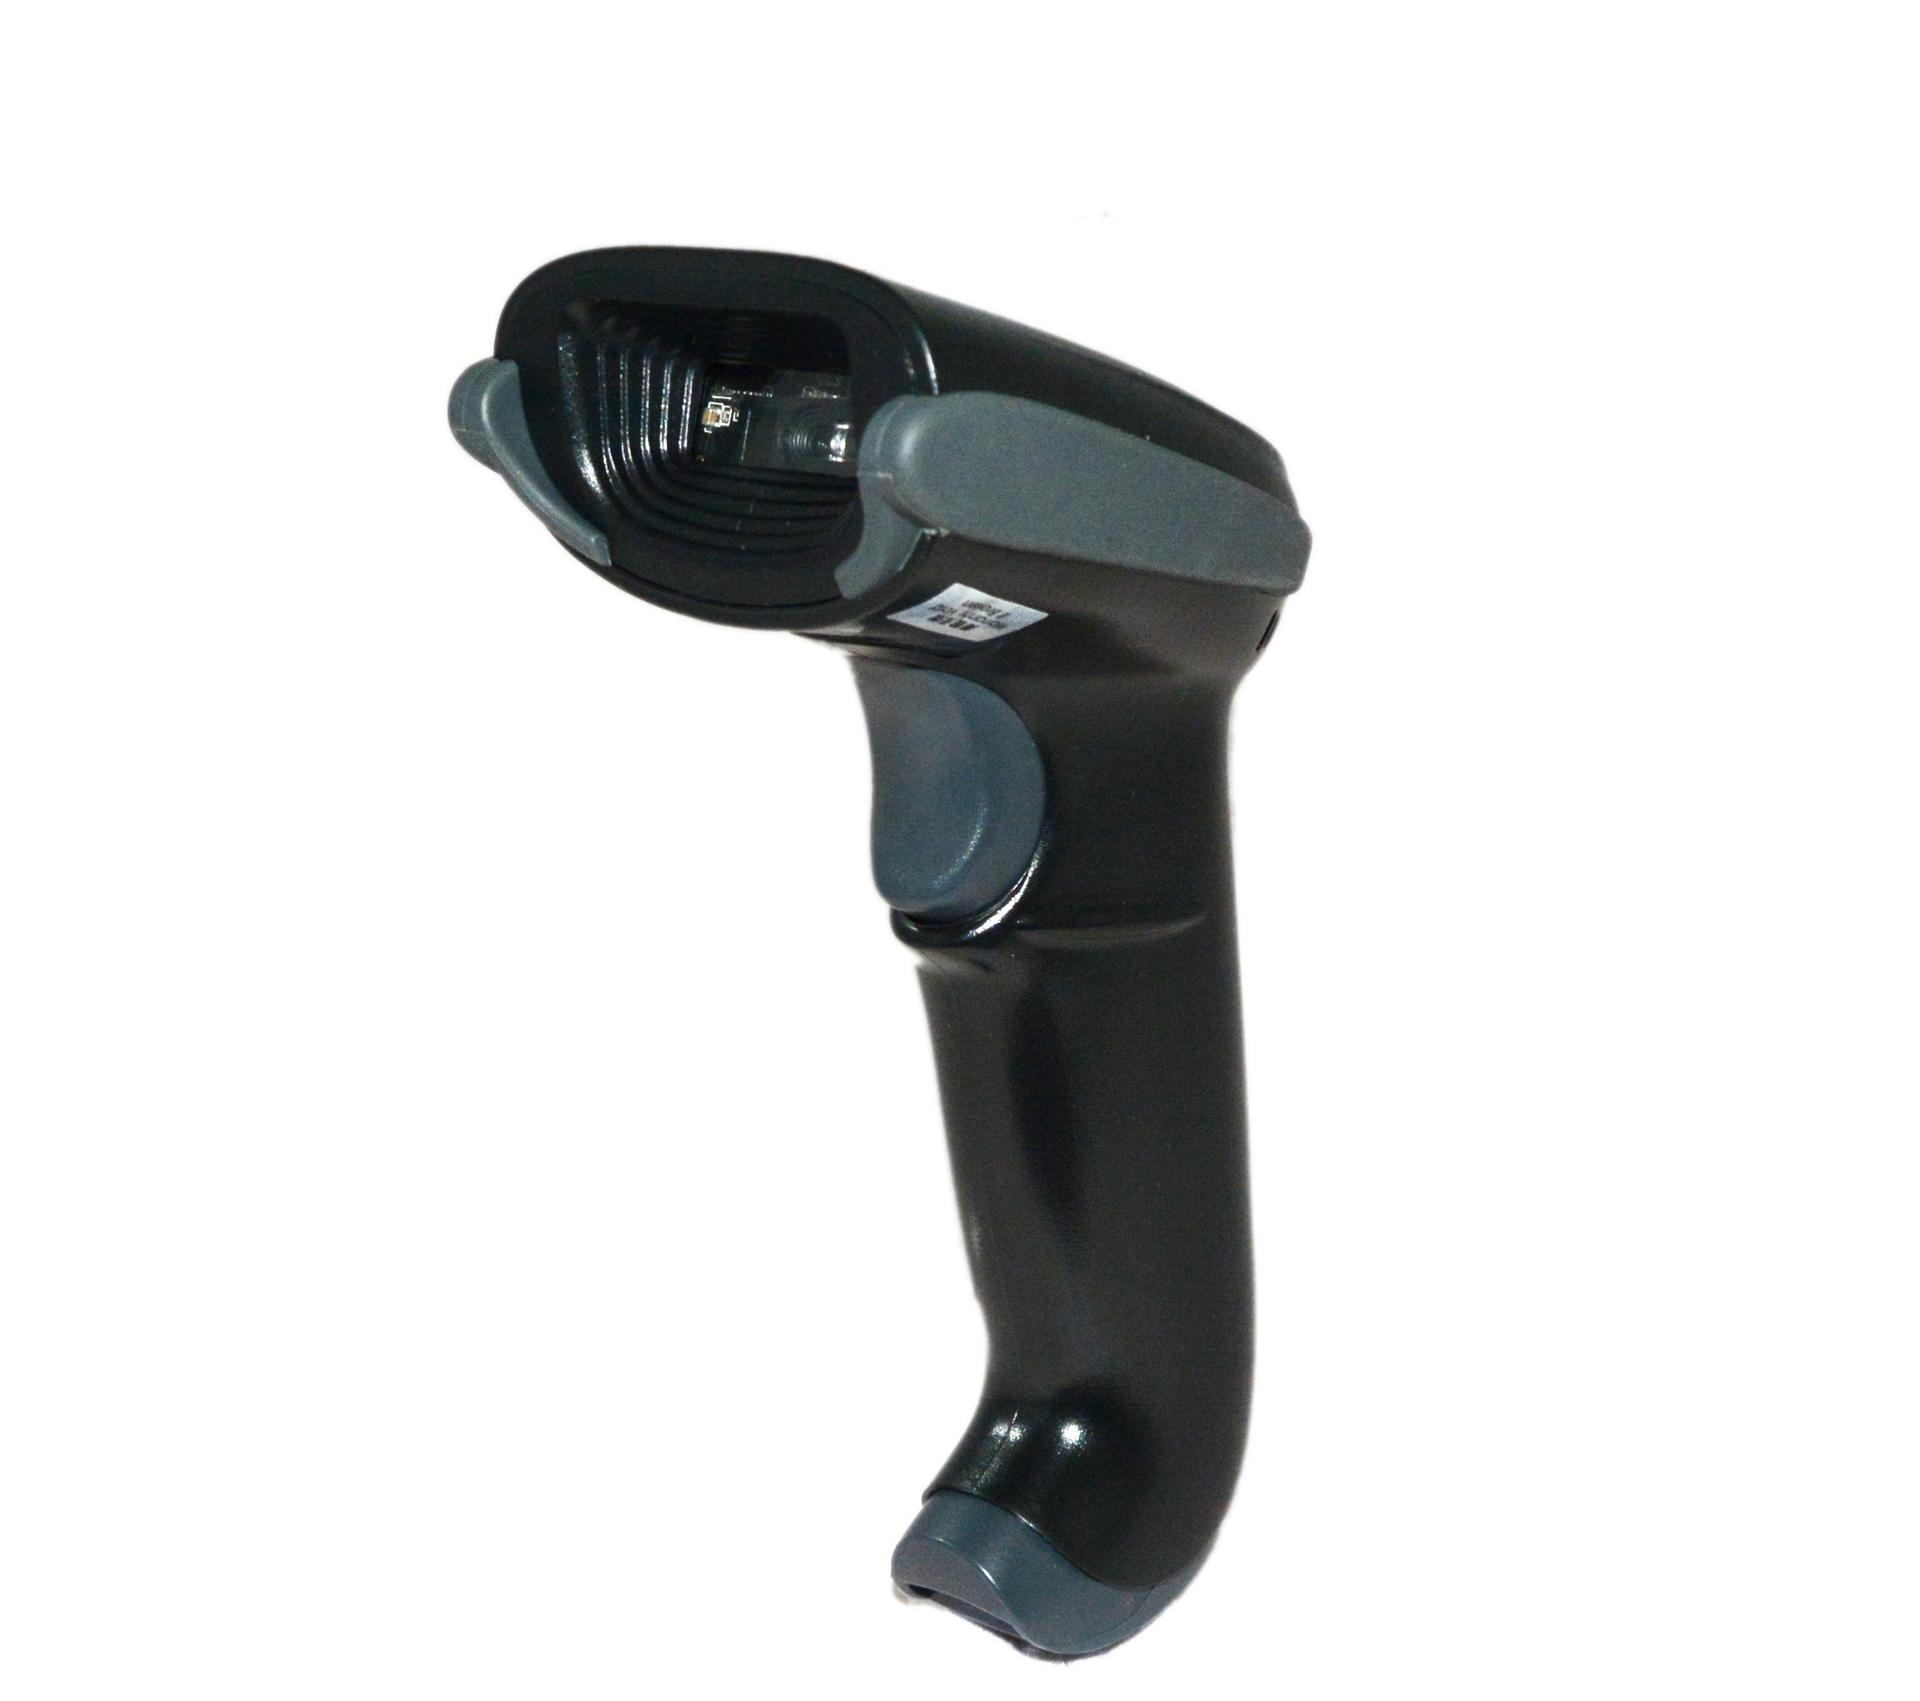 USB Handheld PDF417 Barcode POS Scanner gun for PHONES TPA620